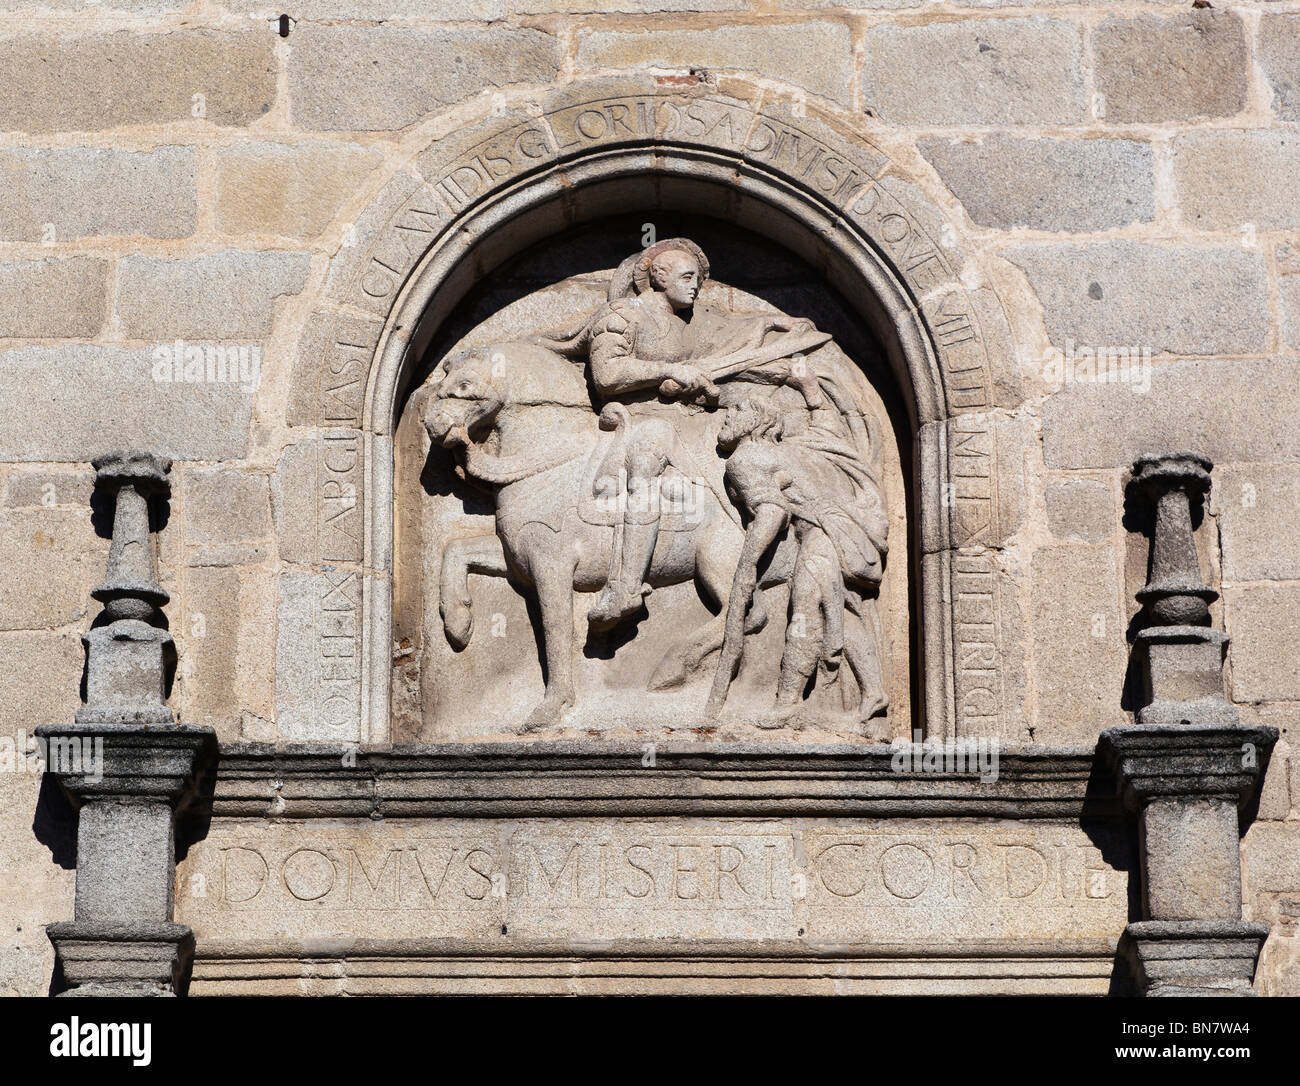 Avila, Avila Province, Spain. Bas-relief of Saint Martin of Tours cutting his cloak in half to share with a beggar, - Stock Image